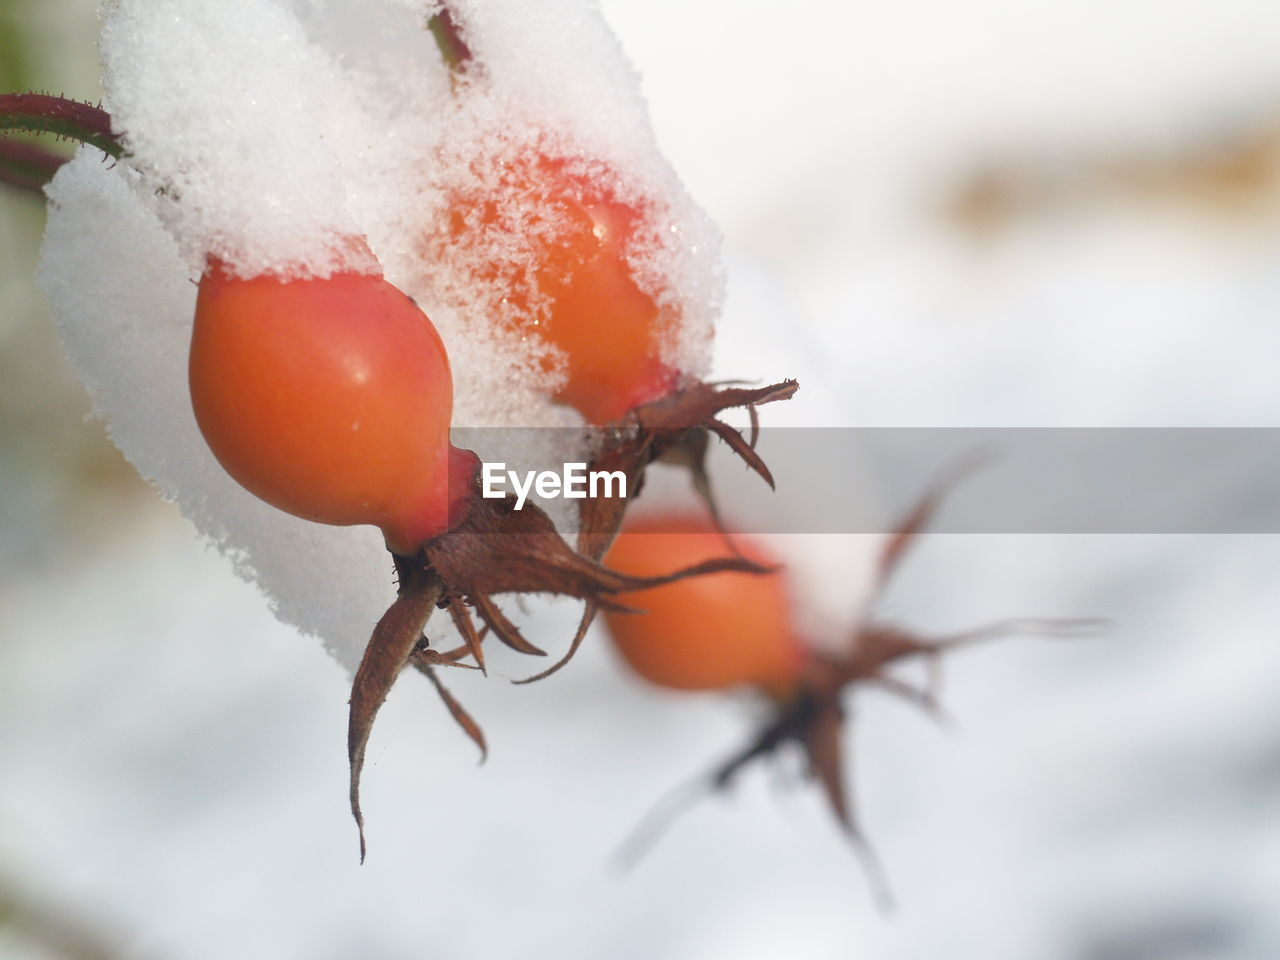 cold temperature, snow, winter, close-up, fruit, healthy eating, no people, rose hip, food and drink, food, nature, frozen, wellbeing, focus on foreground, ice, growth, day, plant, freshness, outdoors, extreme weather, ripe, rowanberry